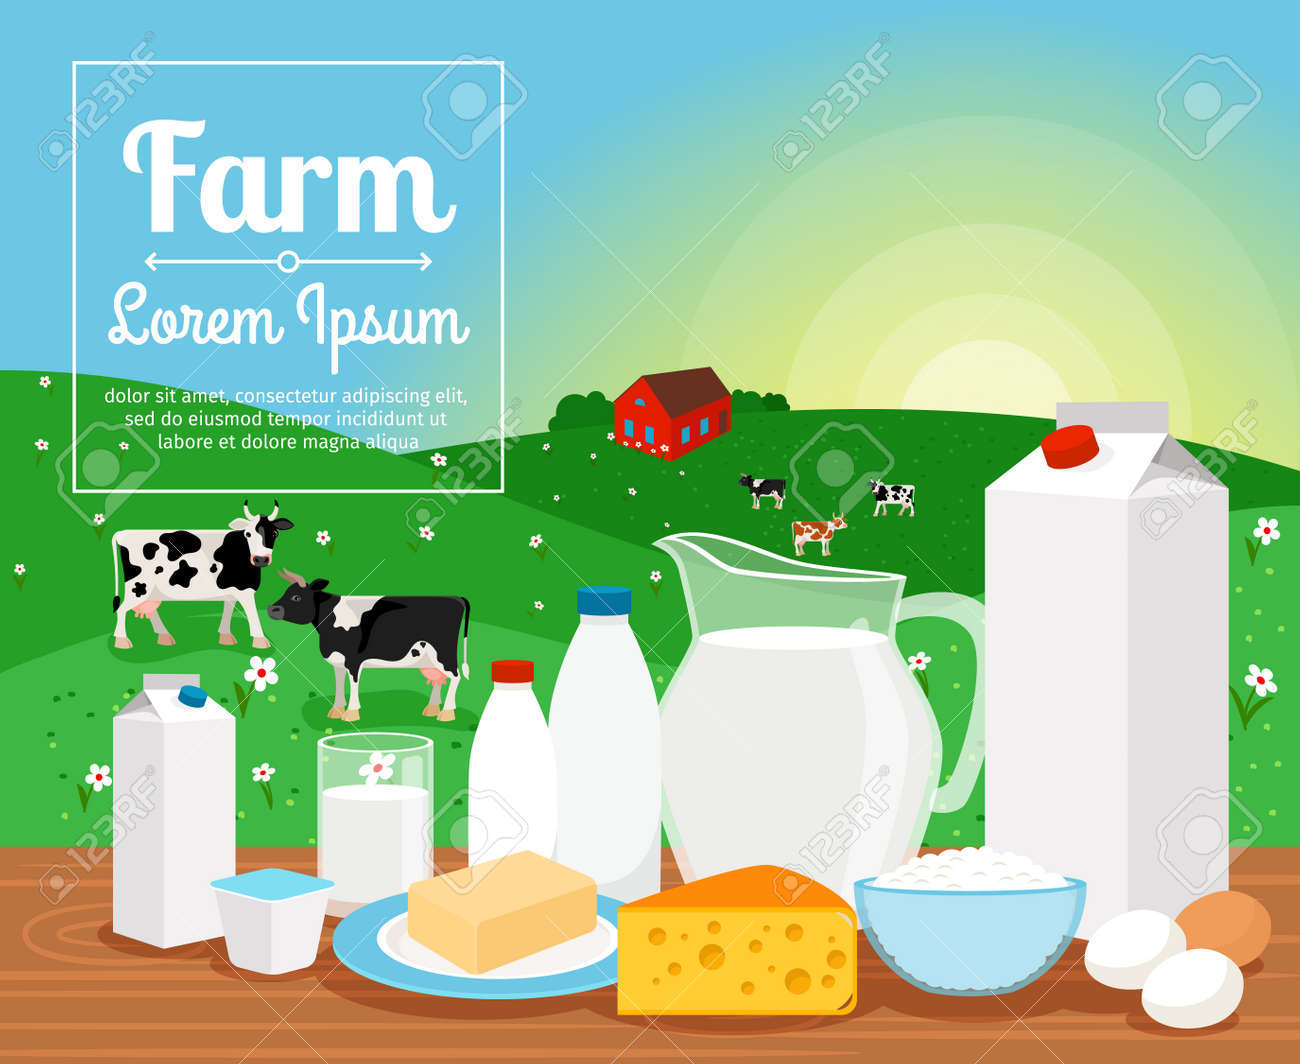 Milk farm dairy products on rural landscape with cows vector illustration - 165989935